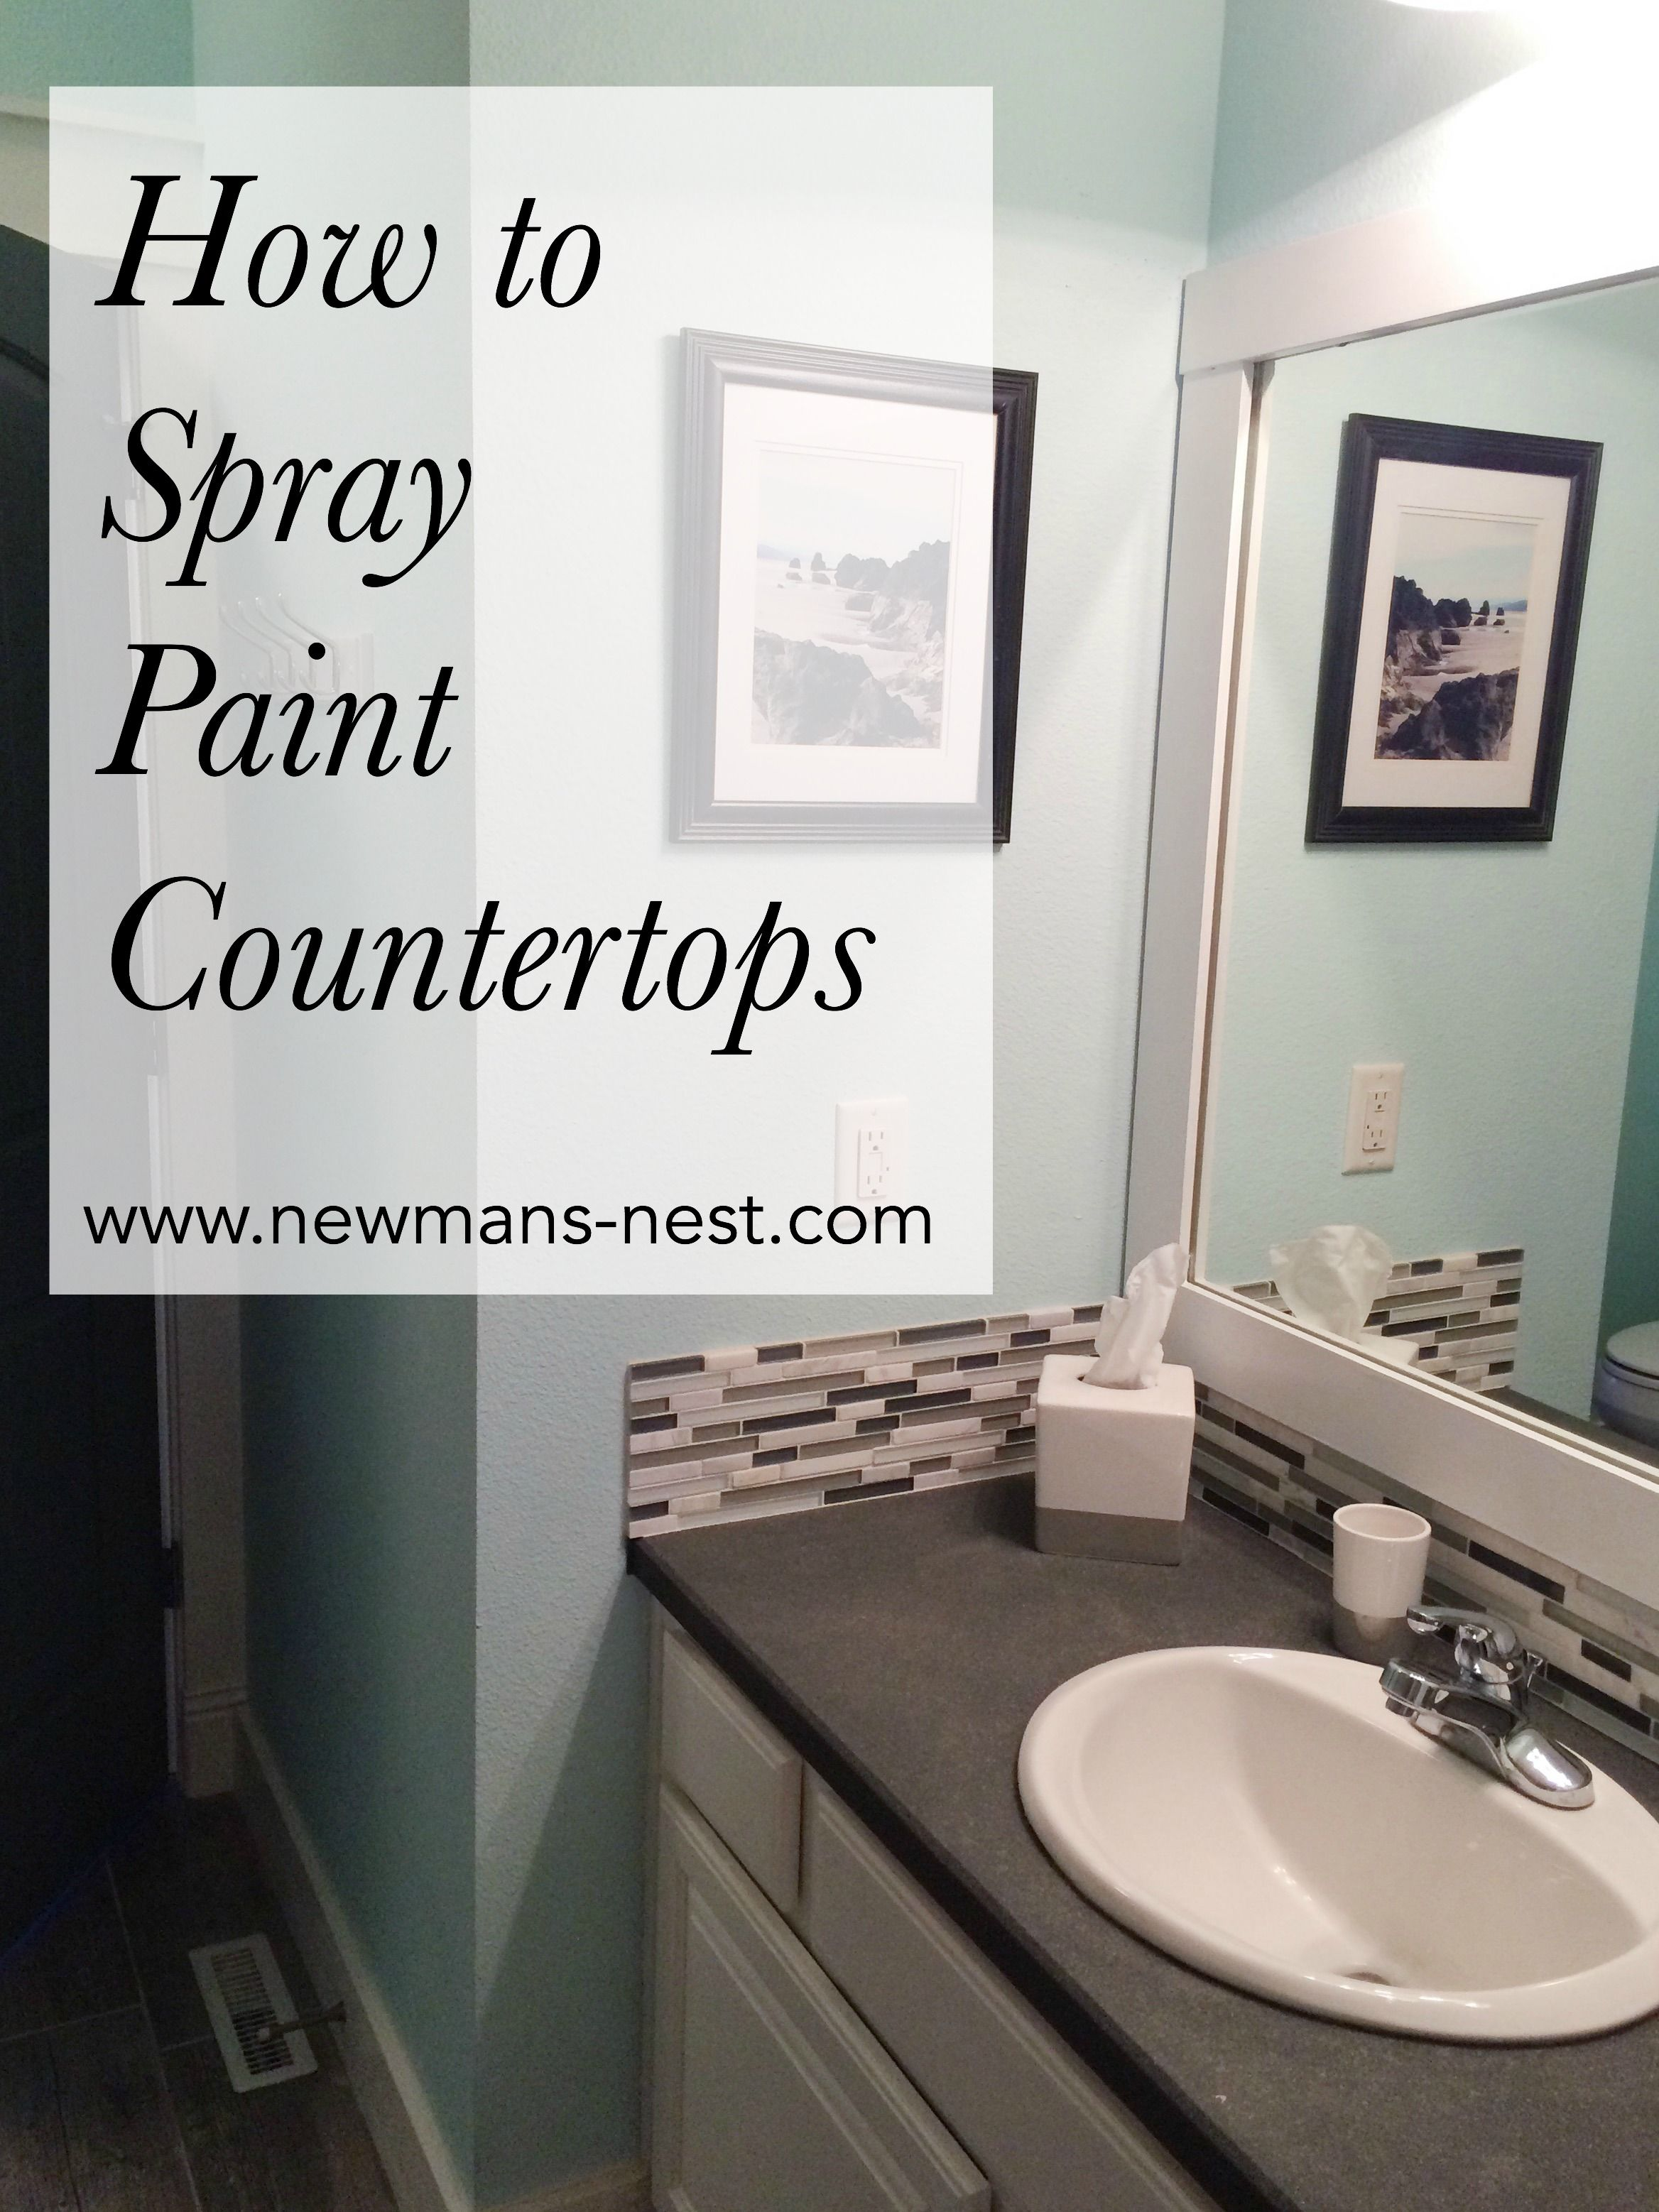 For Our Guest Bathroom I Wanted An Inexpensive Upgrade That Would Completely Change The Current Painting Bathroom Countertopspaint